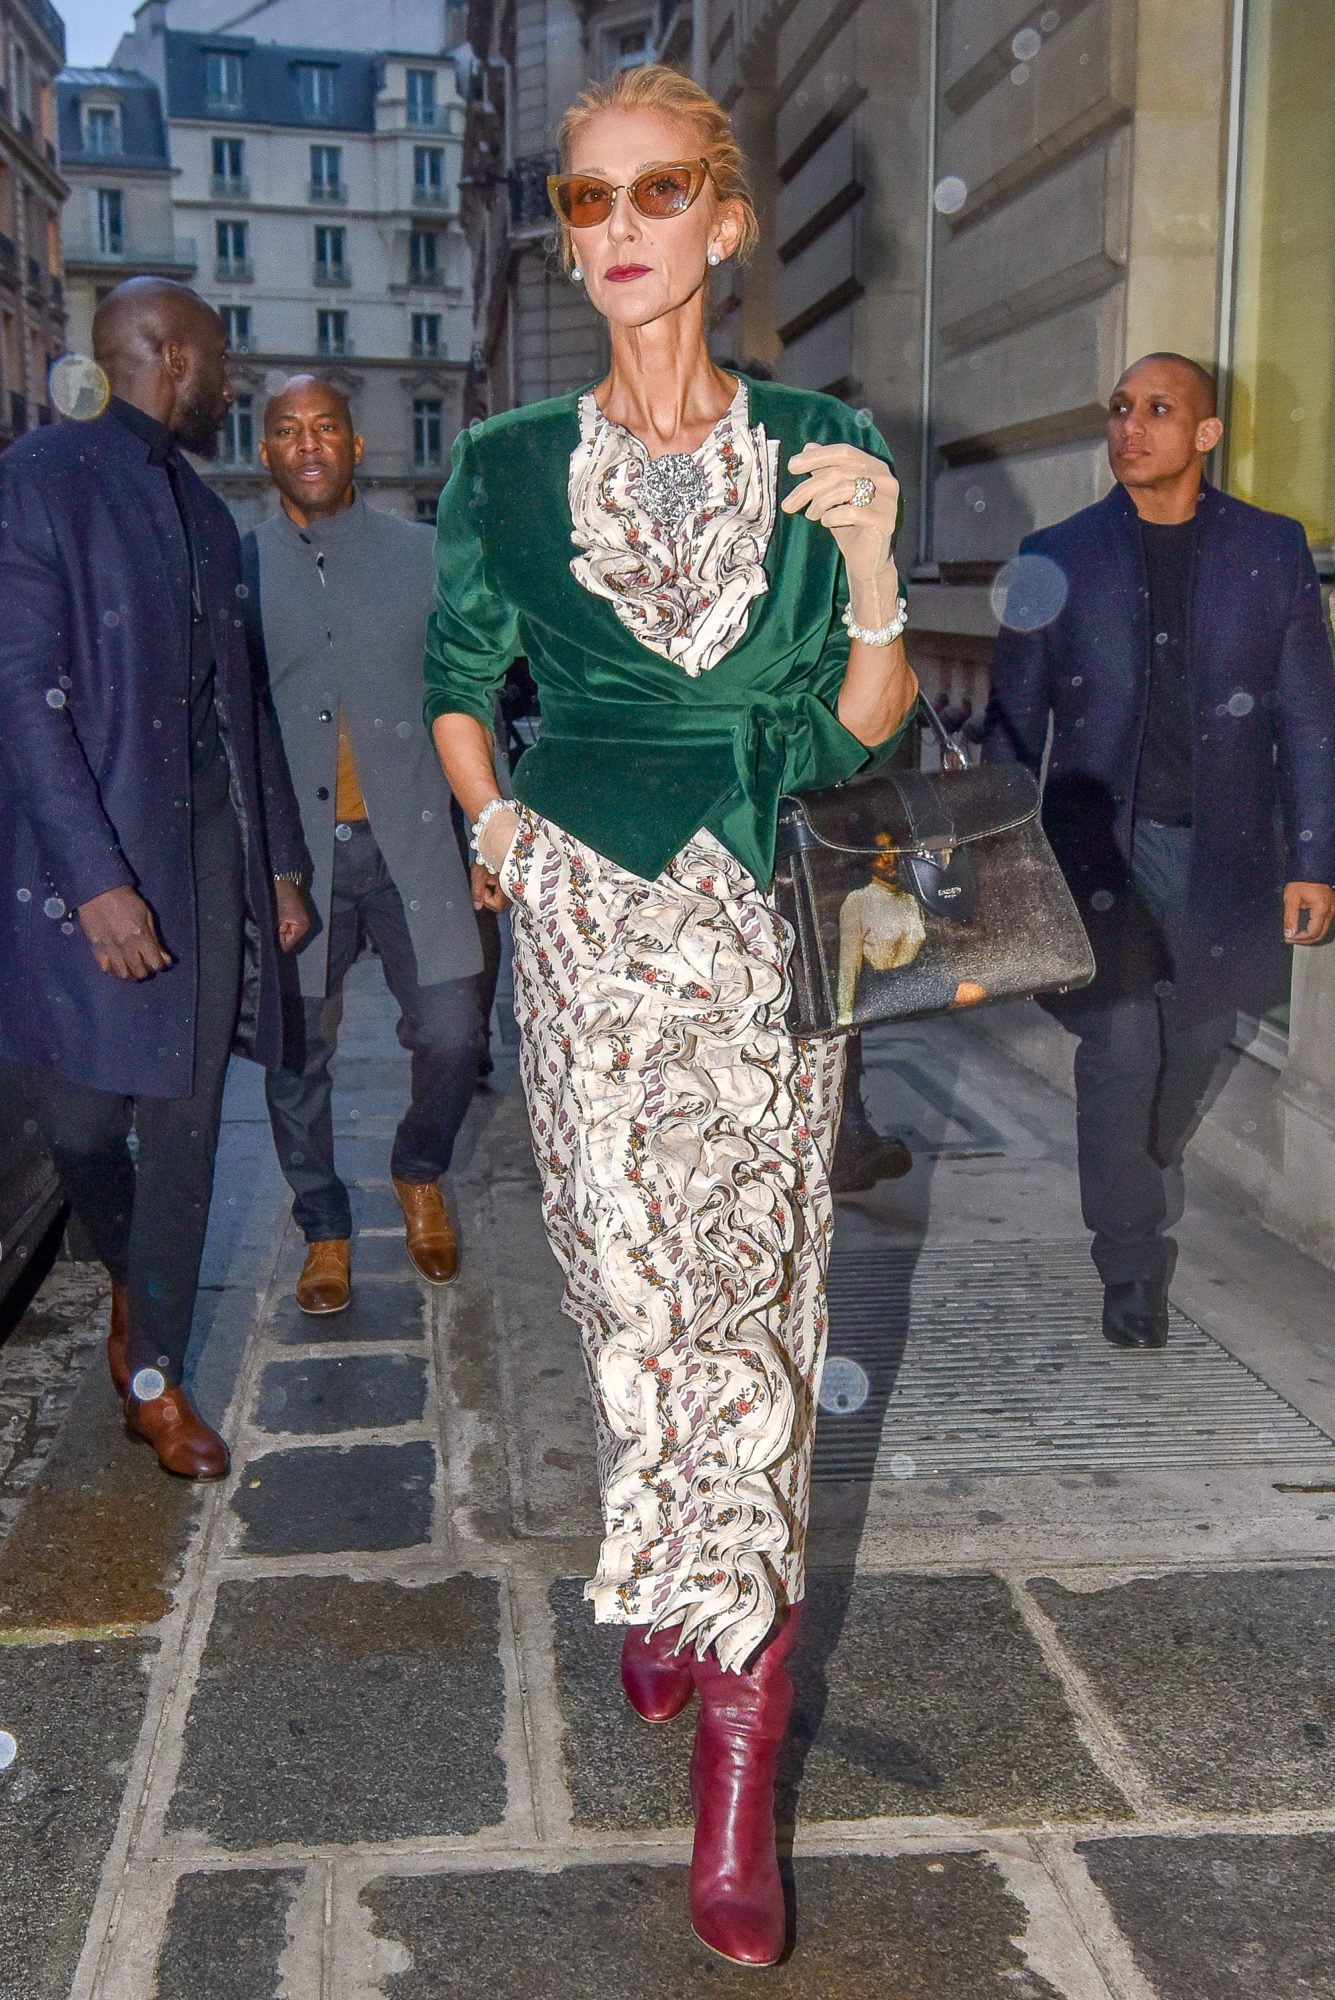 Céline Dion Slams the Criticism Over Her Slimmer Look: 'Leave Me Alone'